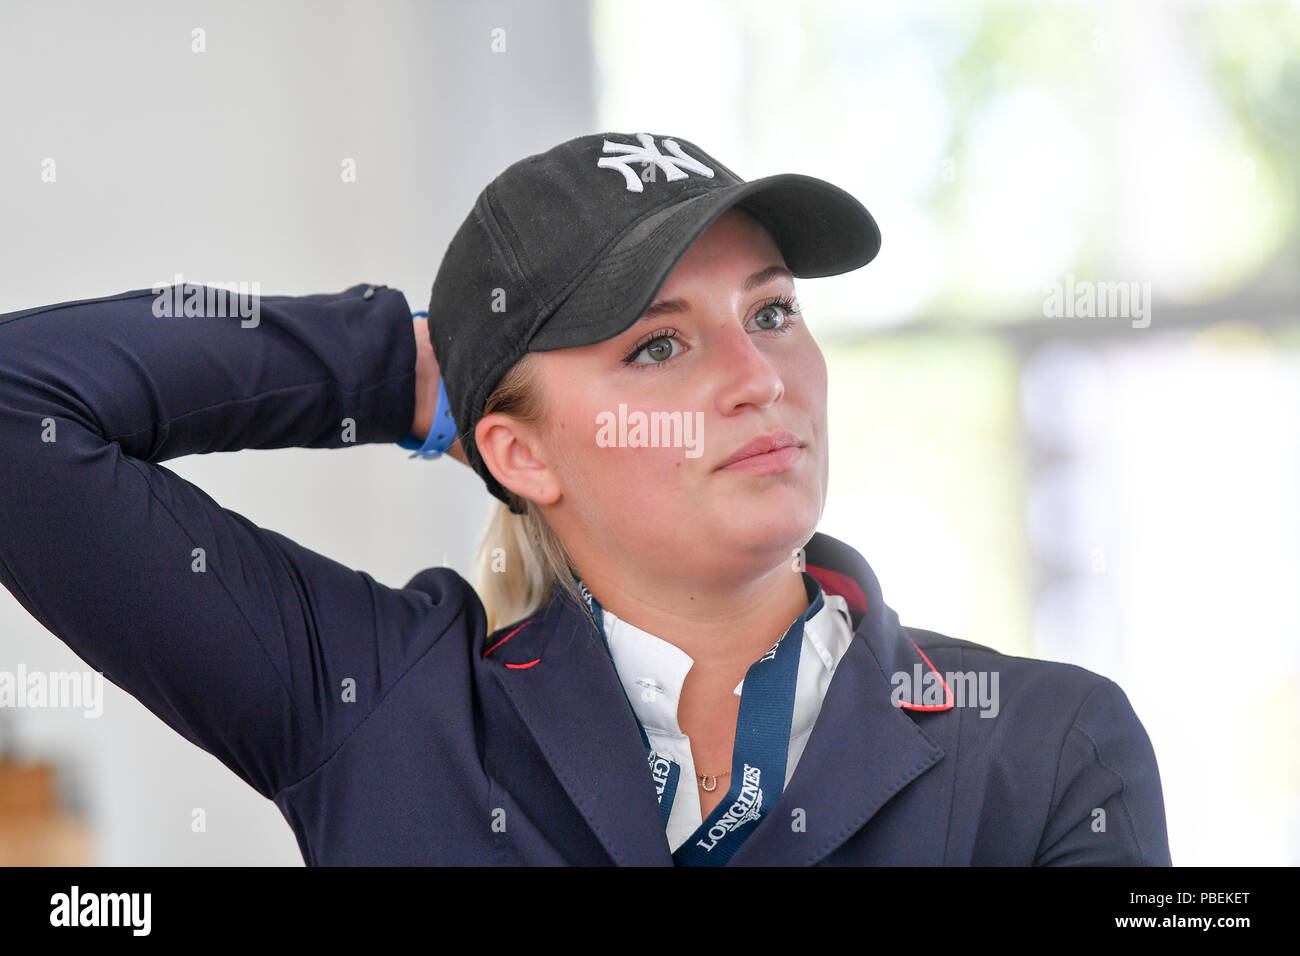 Berlin Germany 28th July 2018 Equestrian Sports Jumping